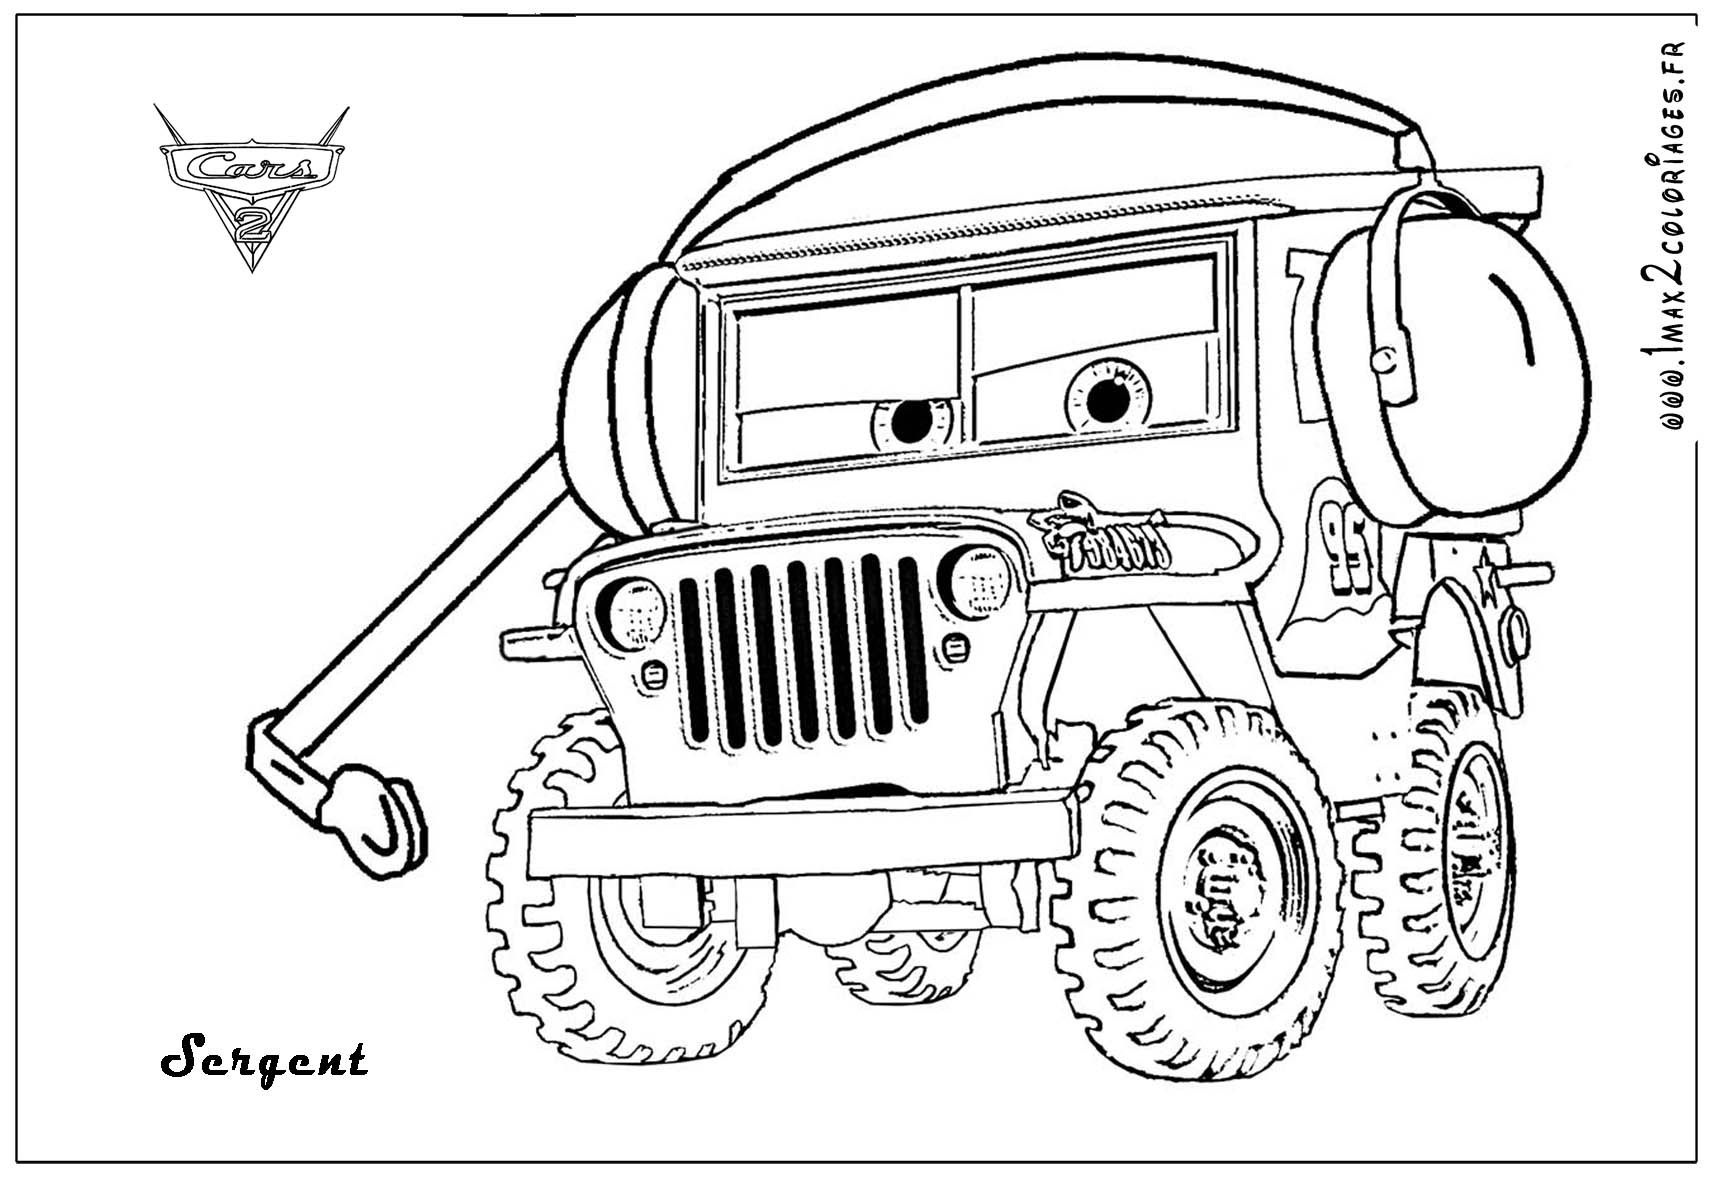 Sarge The World War II Jeep From Movie Cars With His Headset On